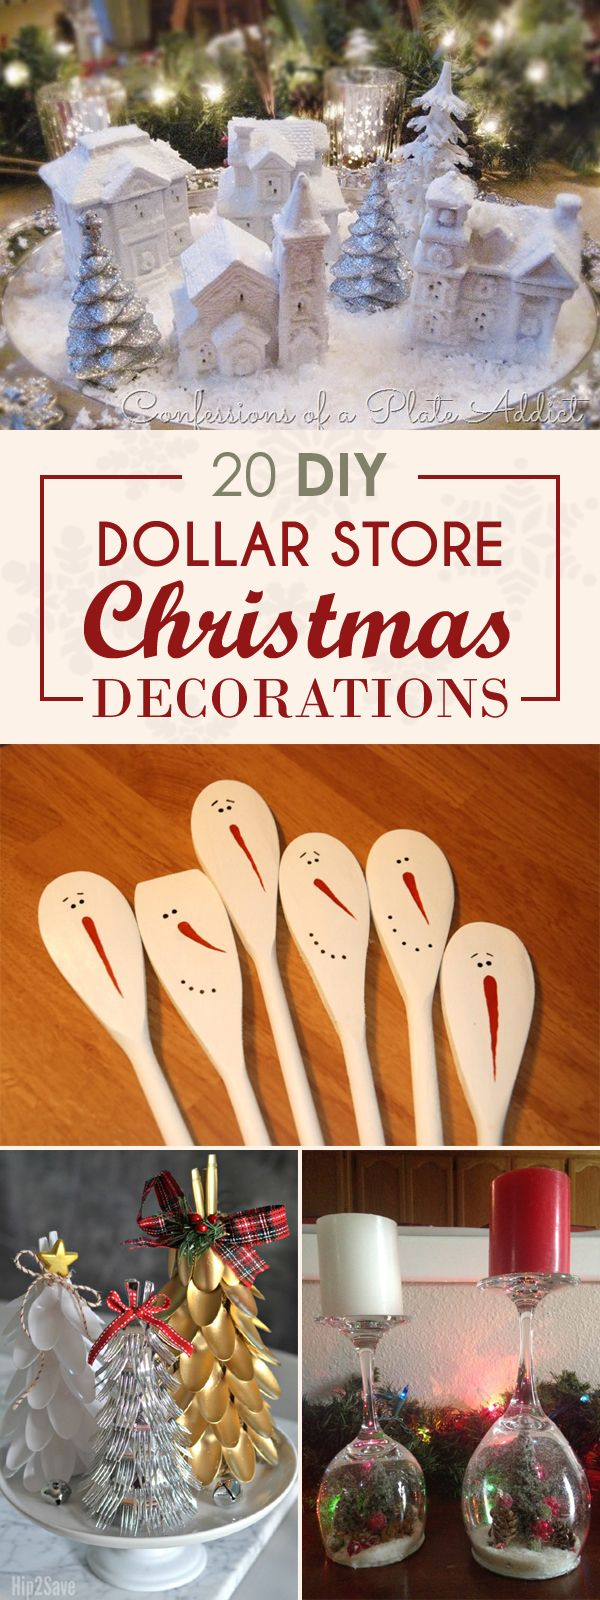 20 Dollar Store Christmas Decorations You Can Easily DIY #dollarstorechristmascrafts